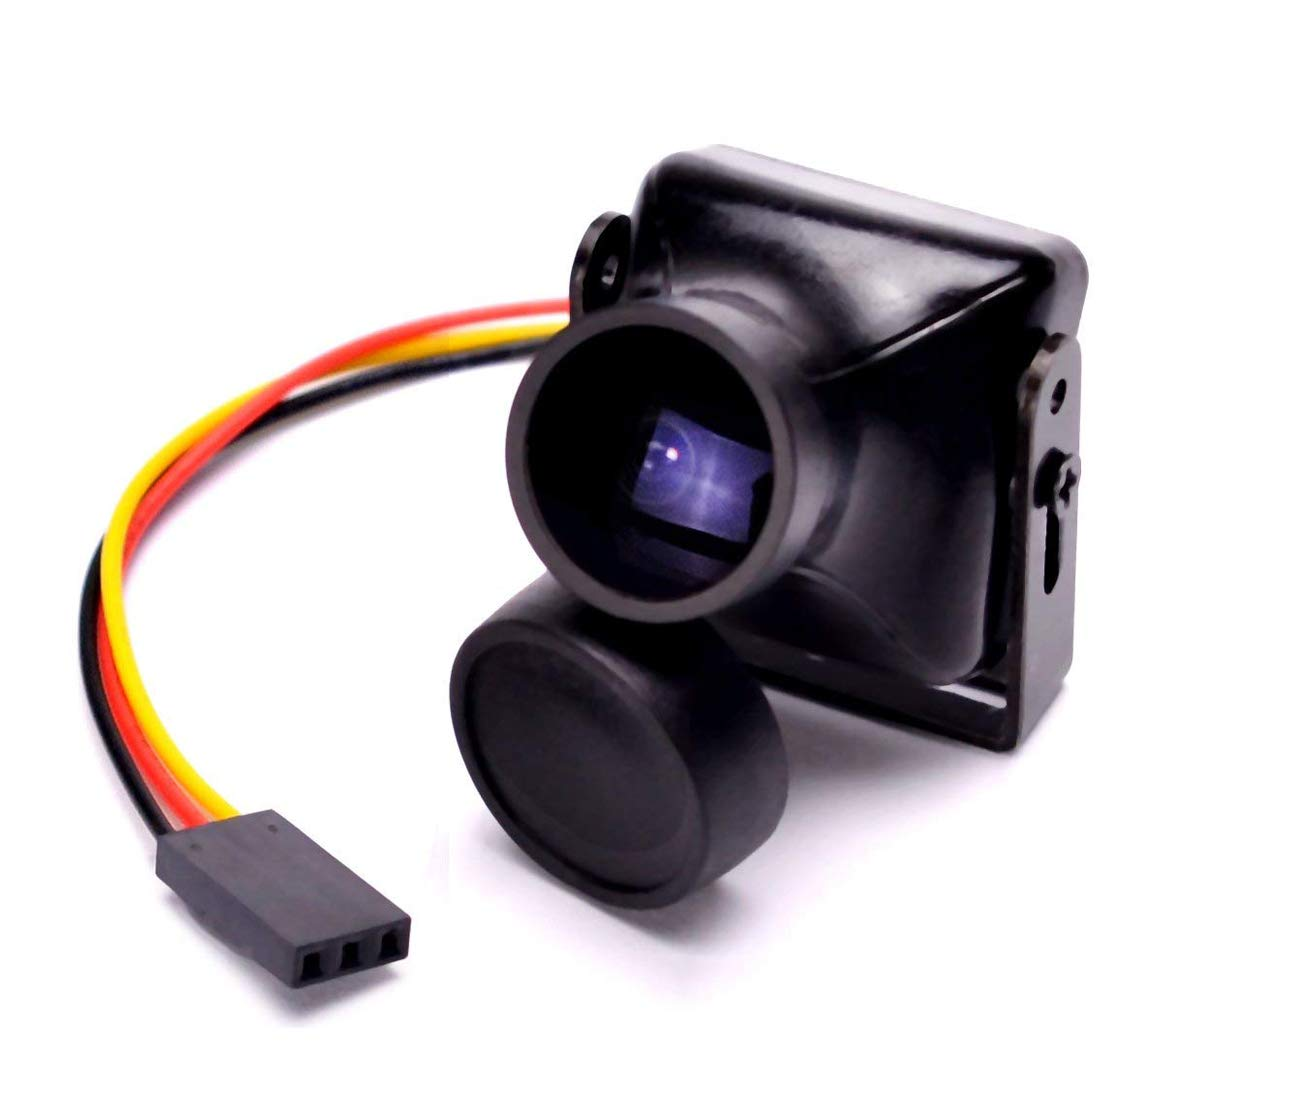 HD 1200TVL FPV Camera CMOS NTSC 2.8mm Lens Mini CCTV Security Video Camera for FPV Quadcopter ZMR250 by FPVDrone